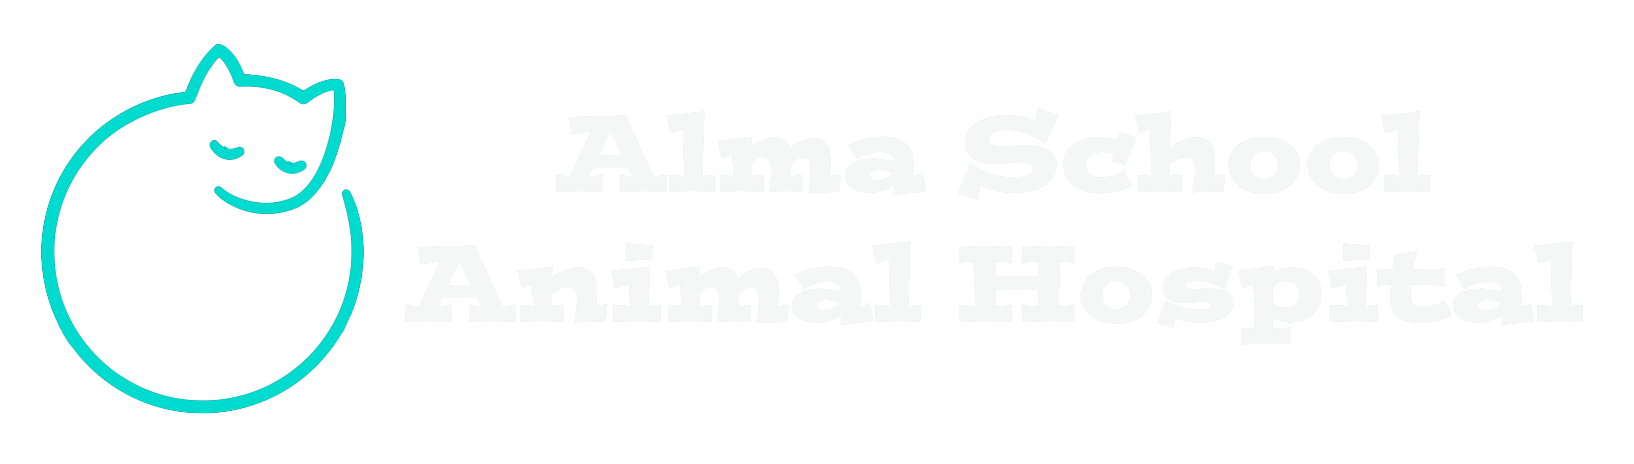 Alma School Animal Hospital logo